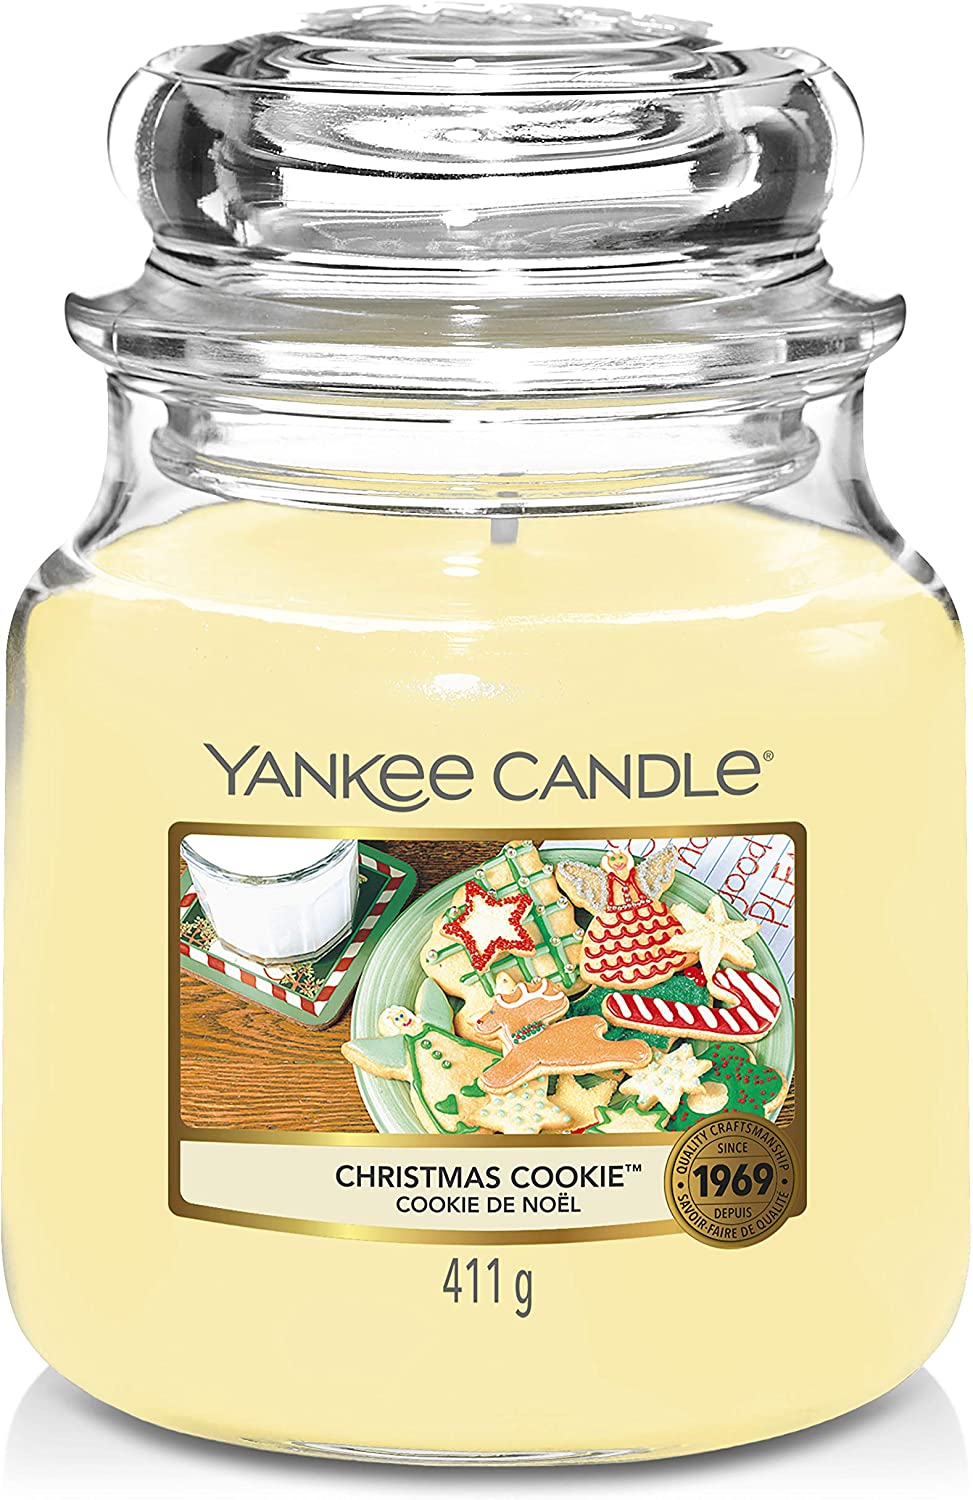 Amazon Com Yankee Candle Medium Jar Candle Christmas Cookie Scented Candle Premium Grade Paraffin Candle Wax With Up To 75 Hour Burn Time Home Kitchen